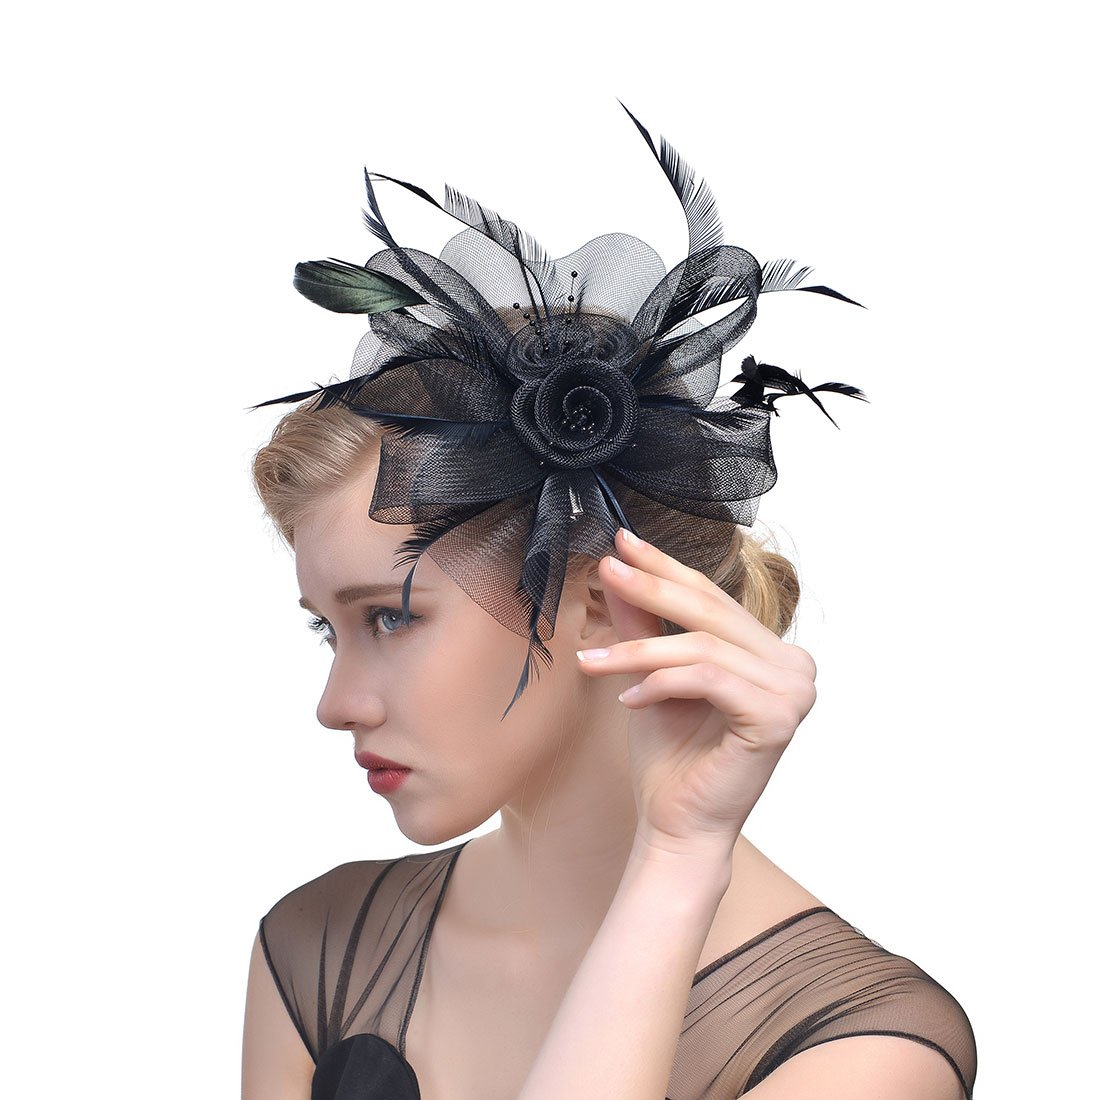 Lanzom Girls Lady Women Fascinators Hat Flower Feathers Hair Clip Tea Party Headband Kentucky Derby Wedding Cocktail Headwear (Style B-Black) by Lanzom